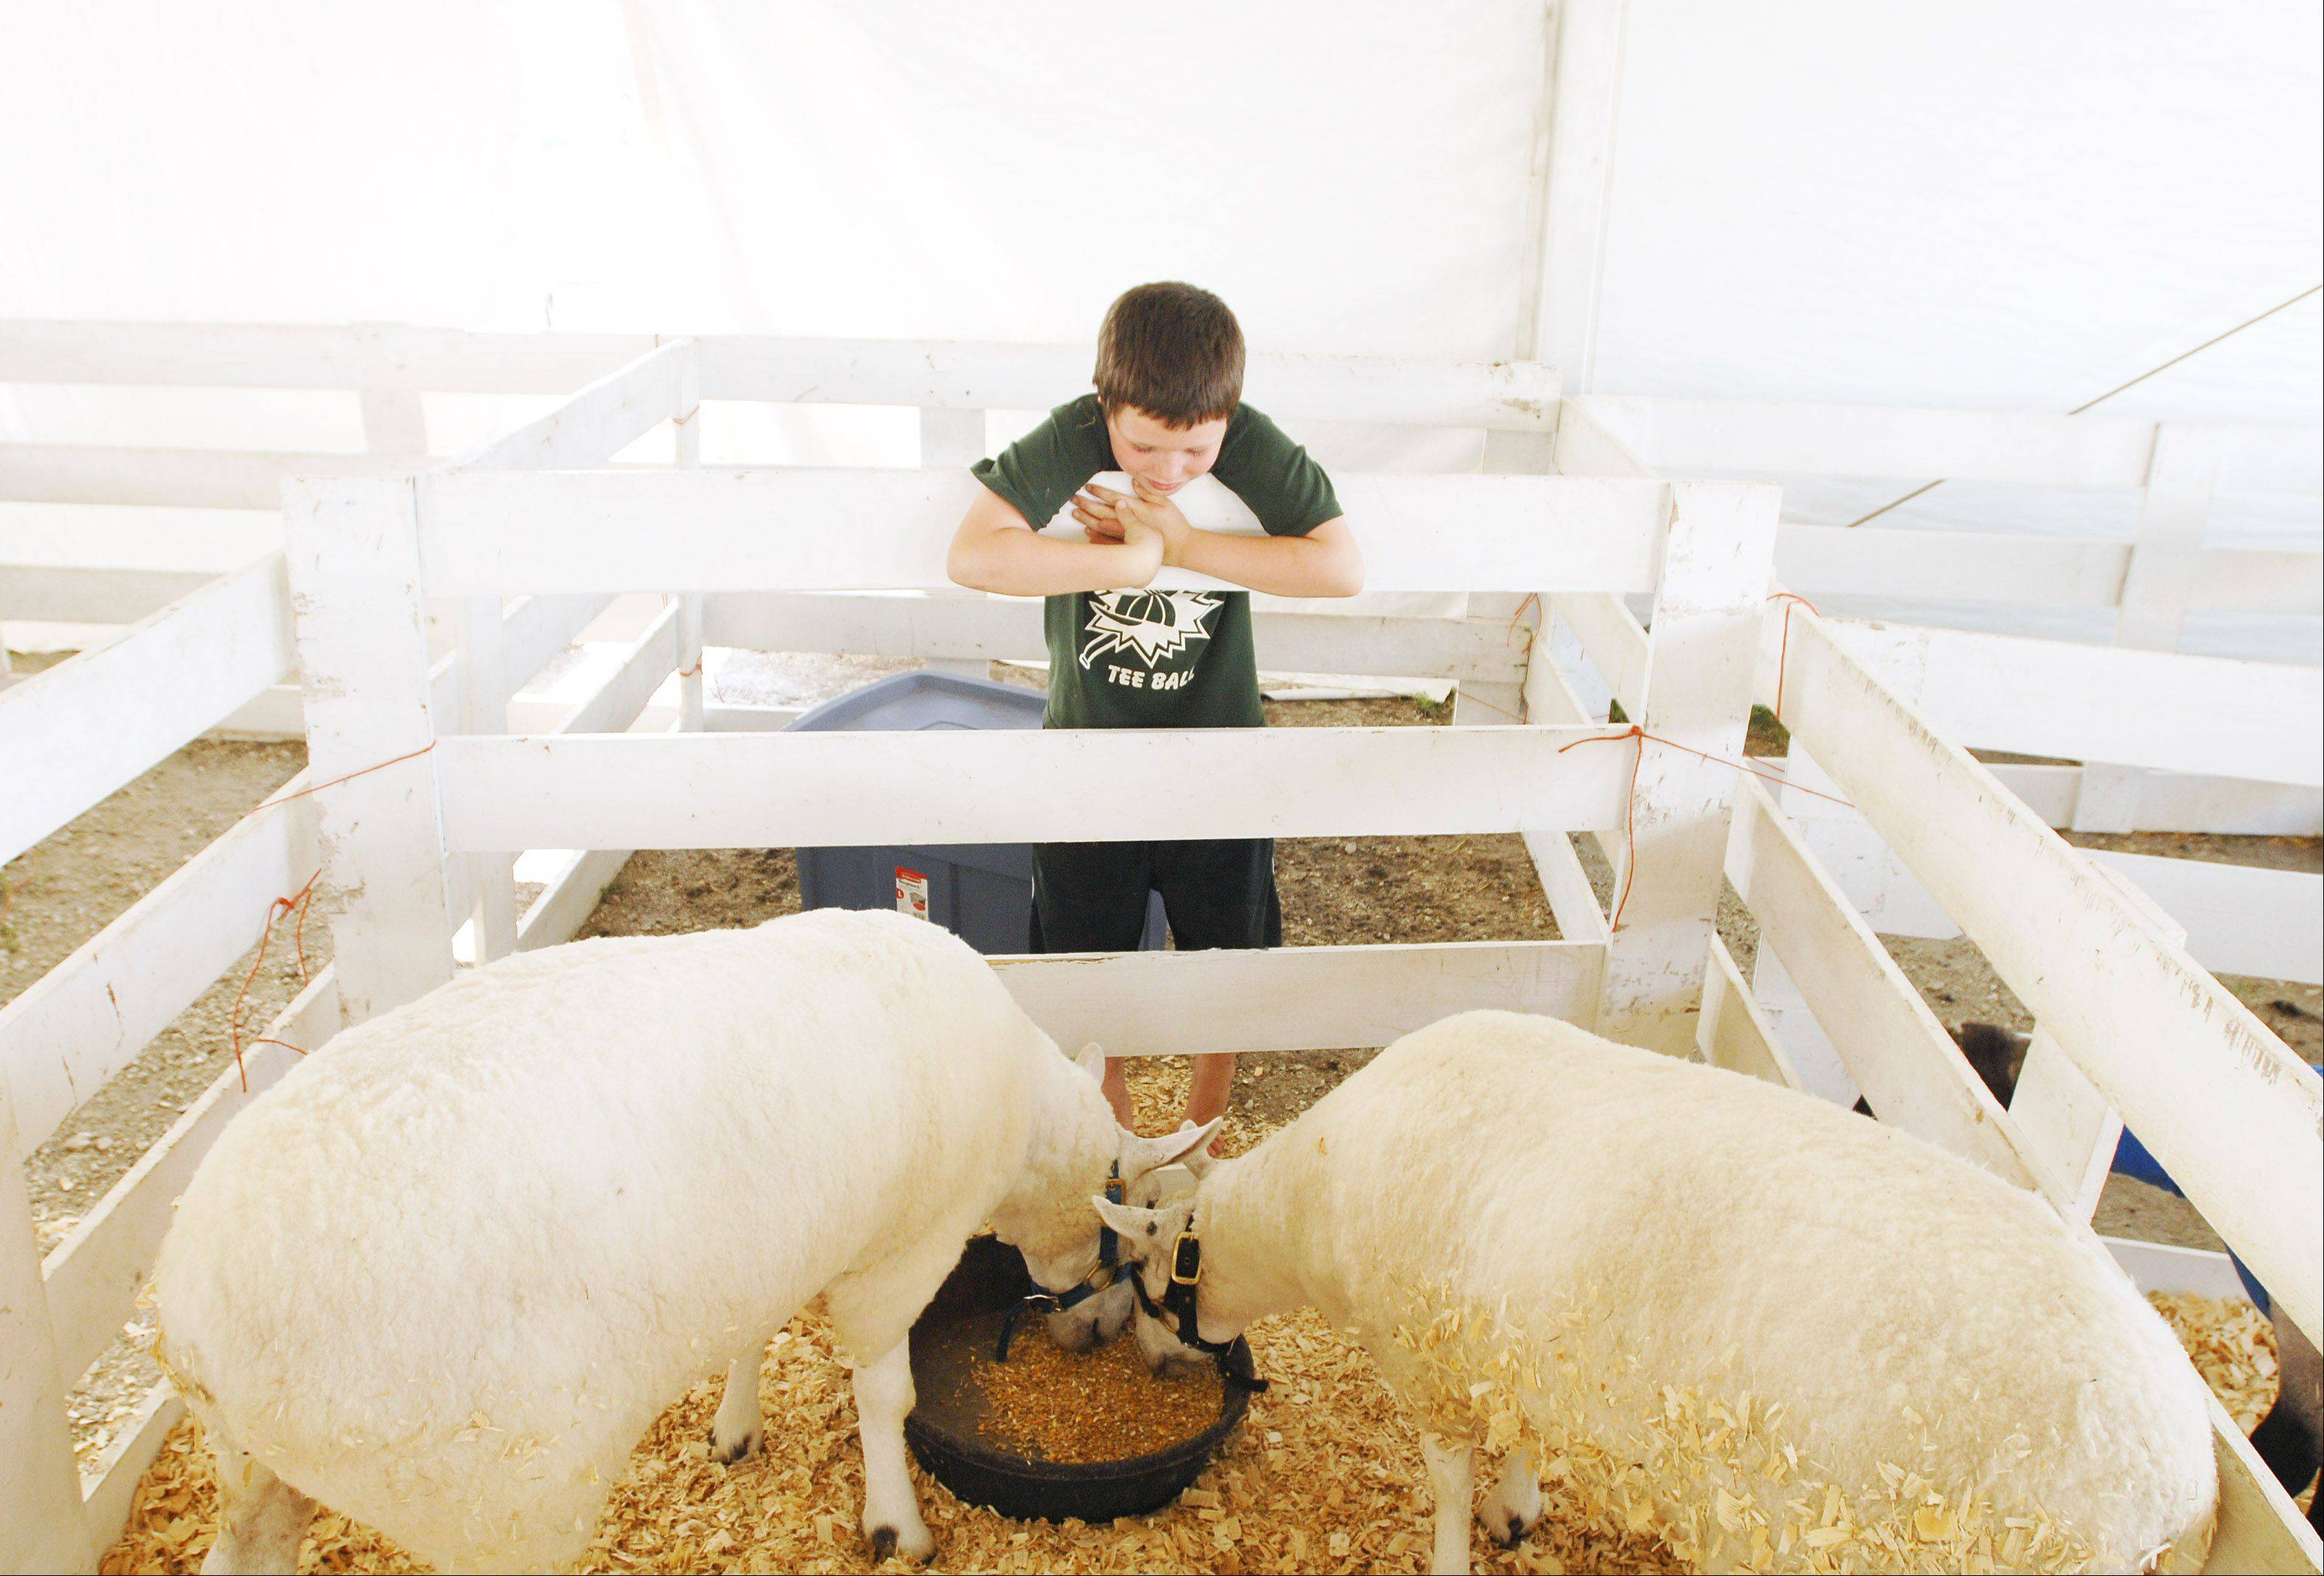 Oli Barraclough, 9, of Glen Ellyn tends to his sheep in preparation for tomorrows opening of the DuPage County Fair.